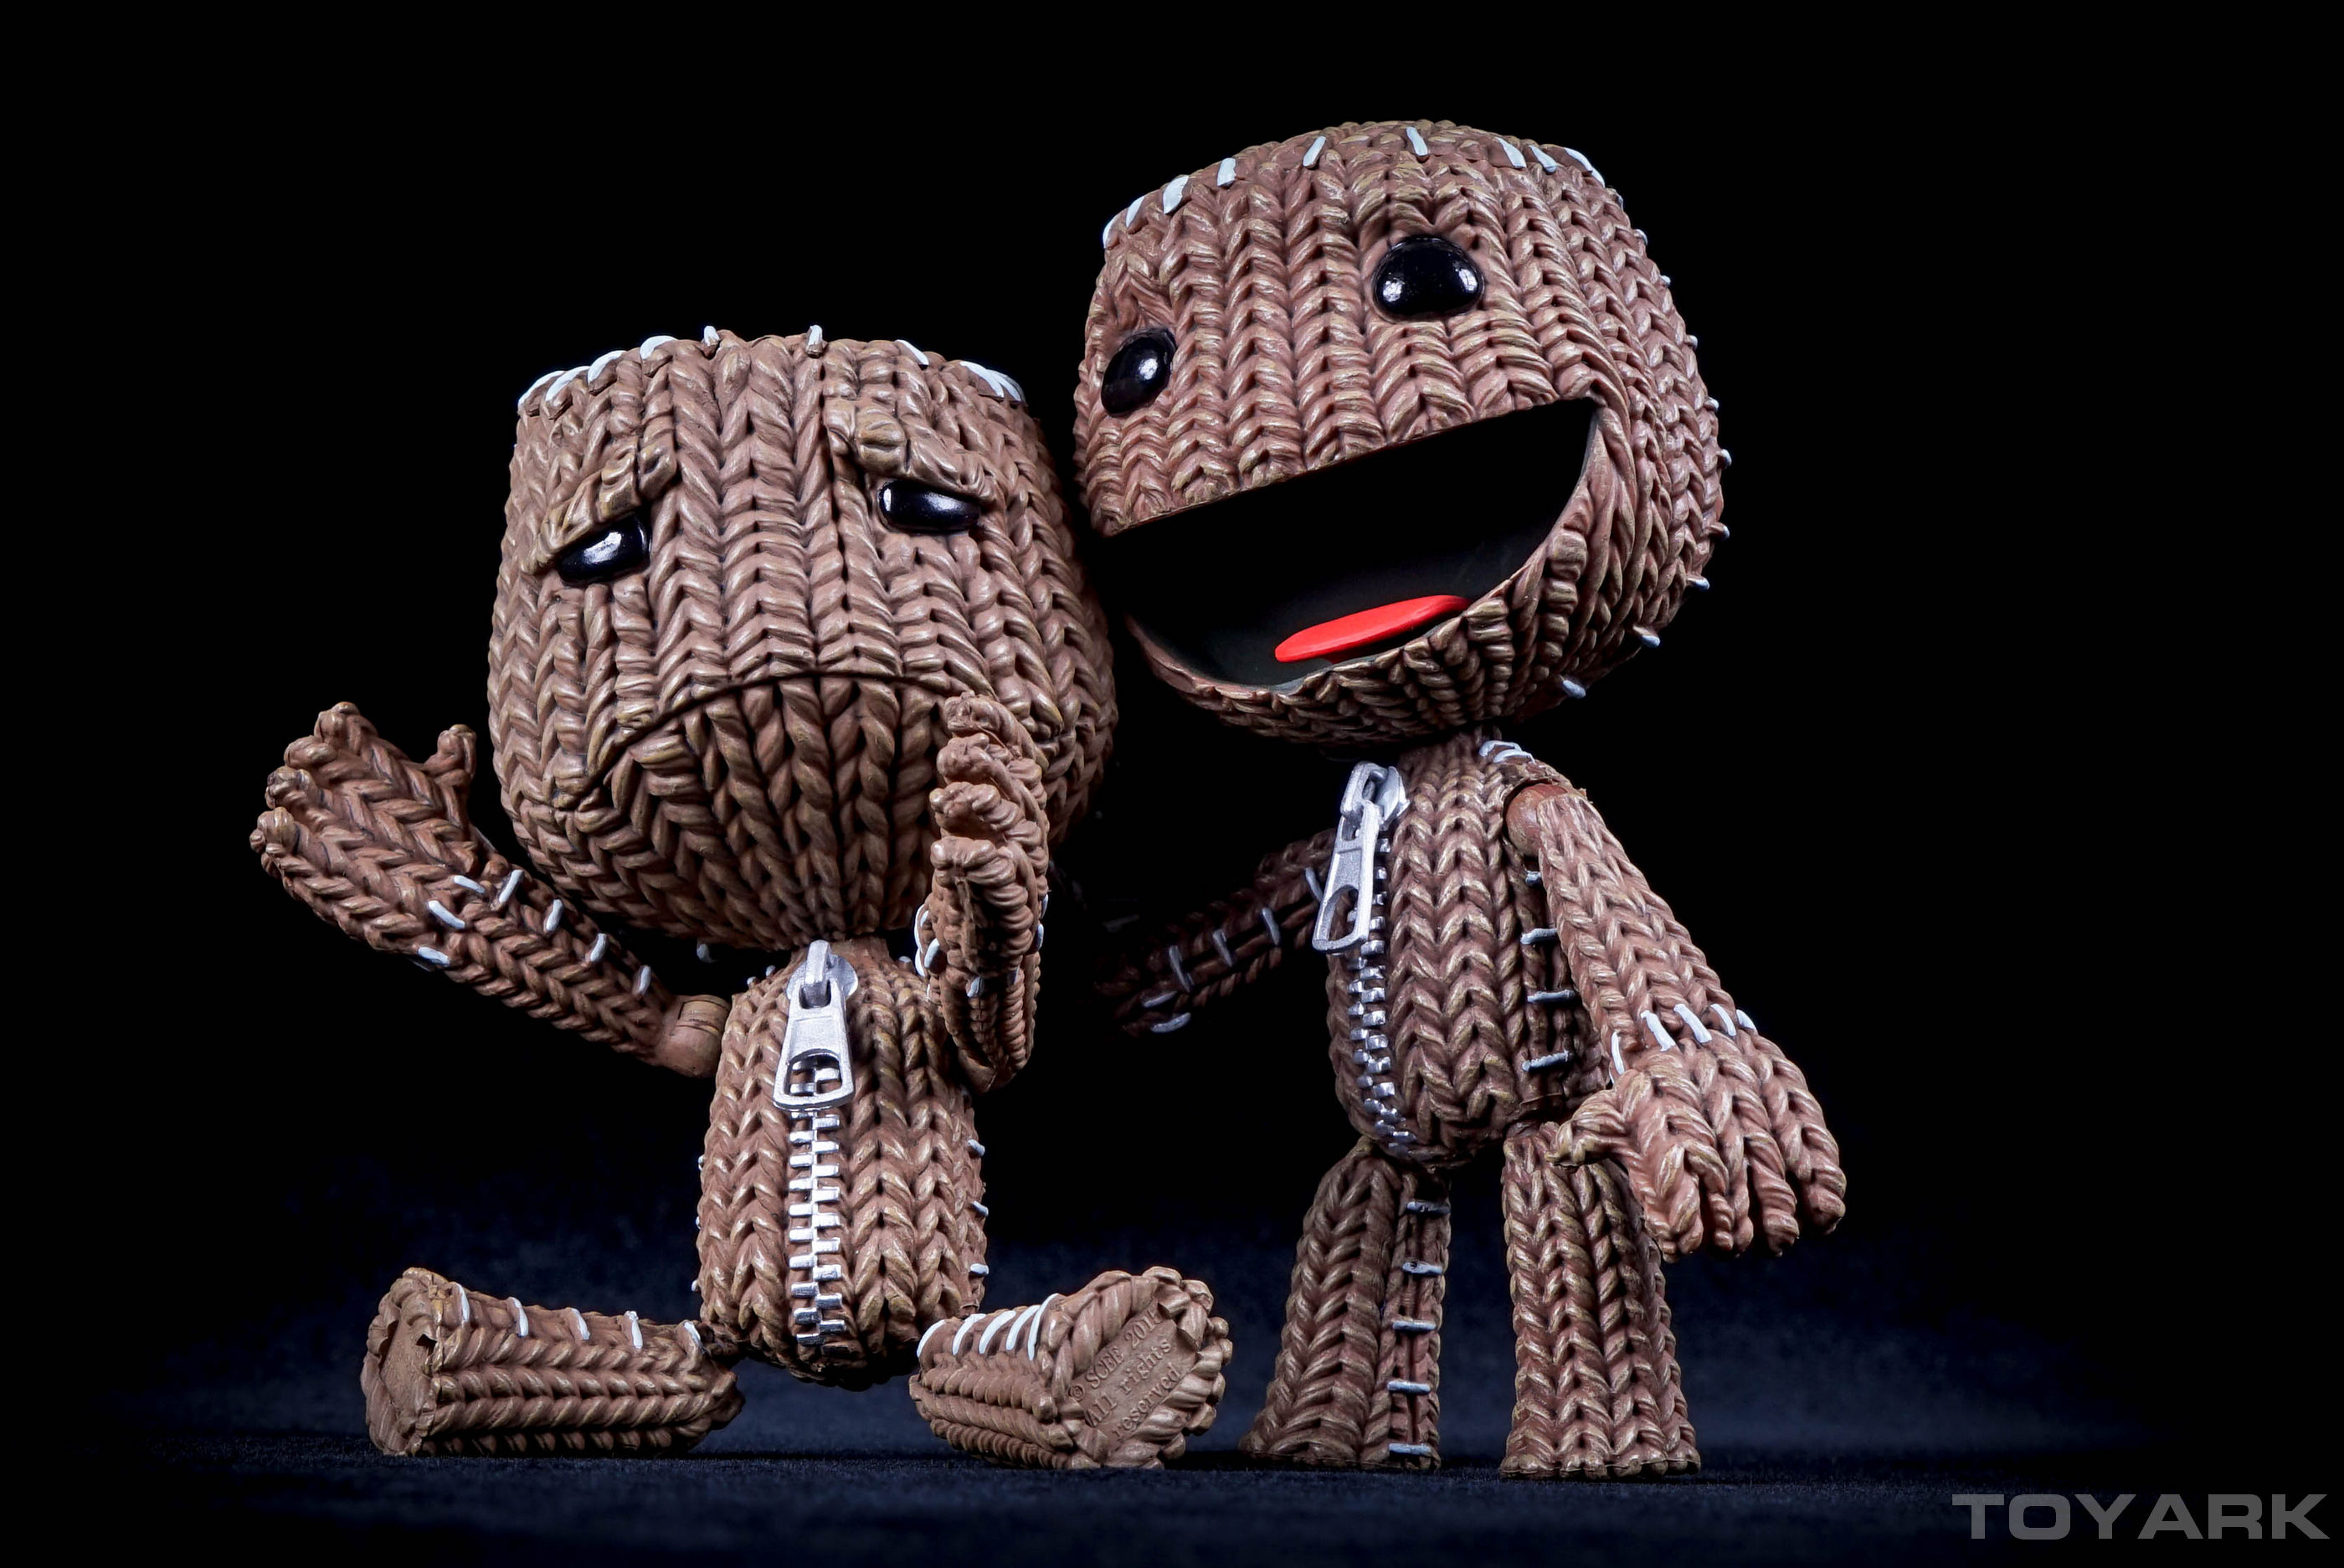 http://news.toyark.com/wp-content/uploads/sites/4/2015/11/LittleBigPlanet-Series-1-NECA-047.jpg